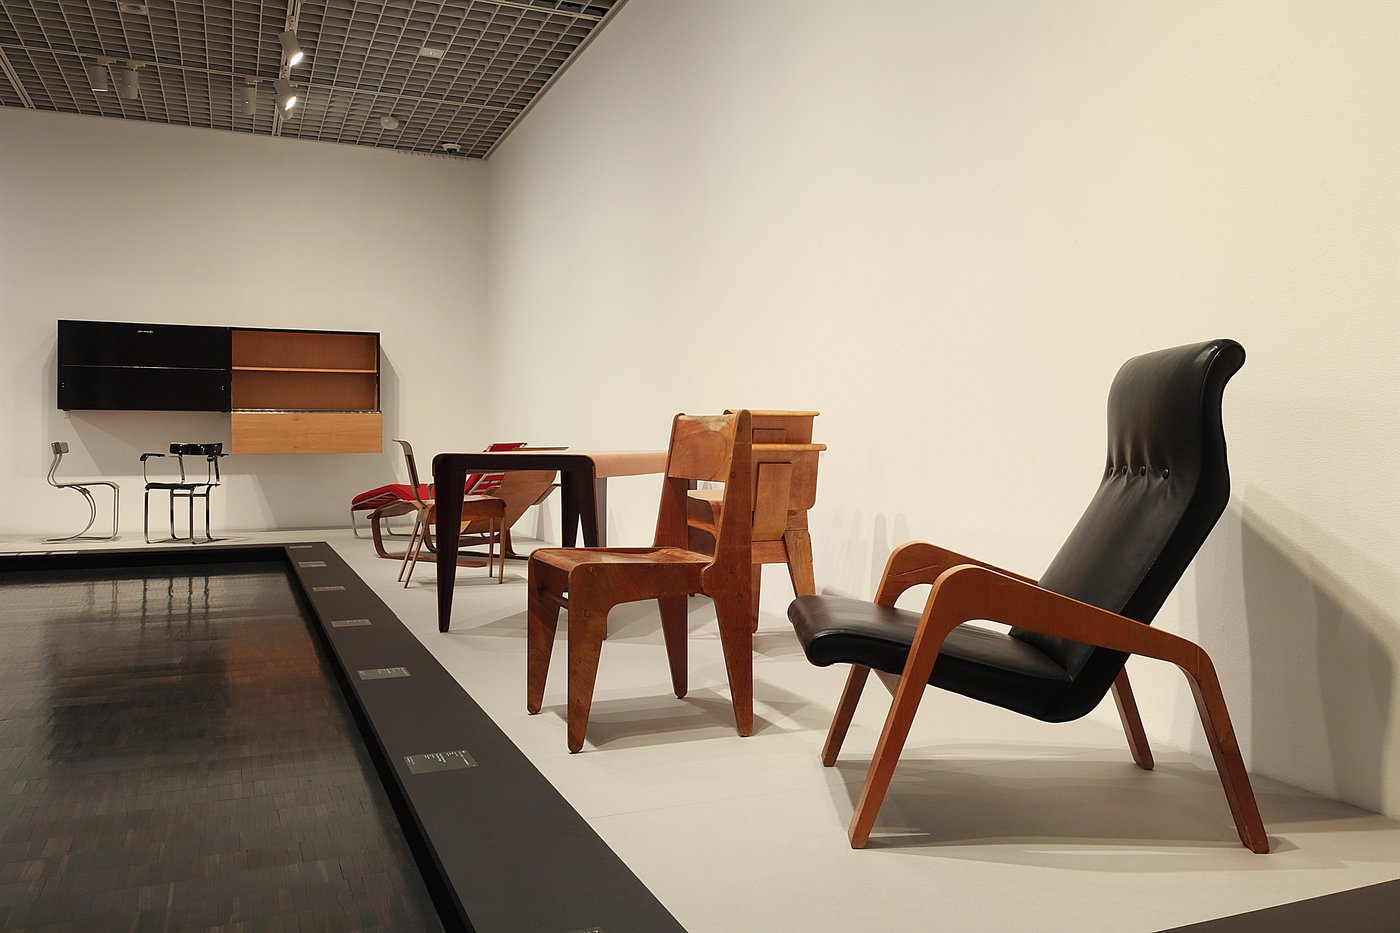 Marcel breuers furniture exhibition at the national museum of modern art in tokyo 3 march 7 may 2017 national museum of modern art tokyo